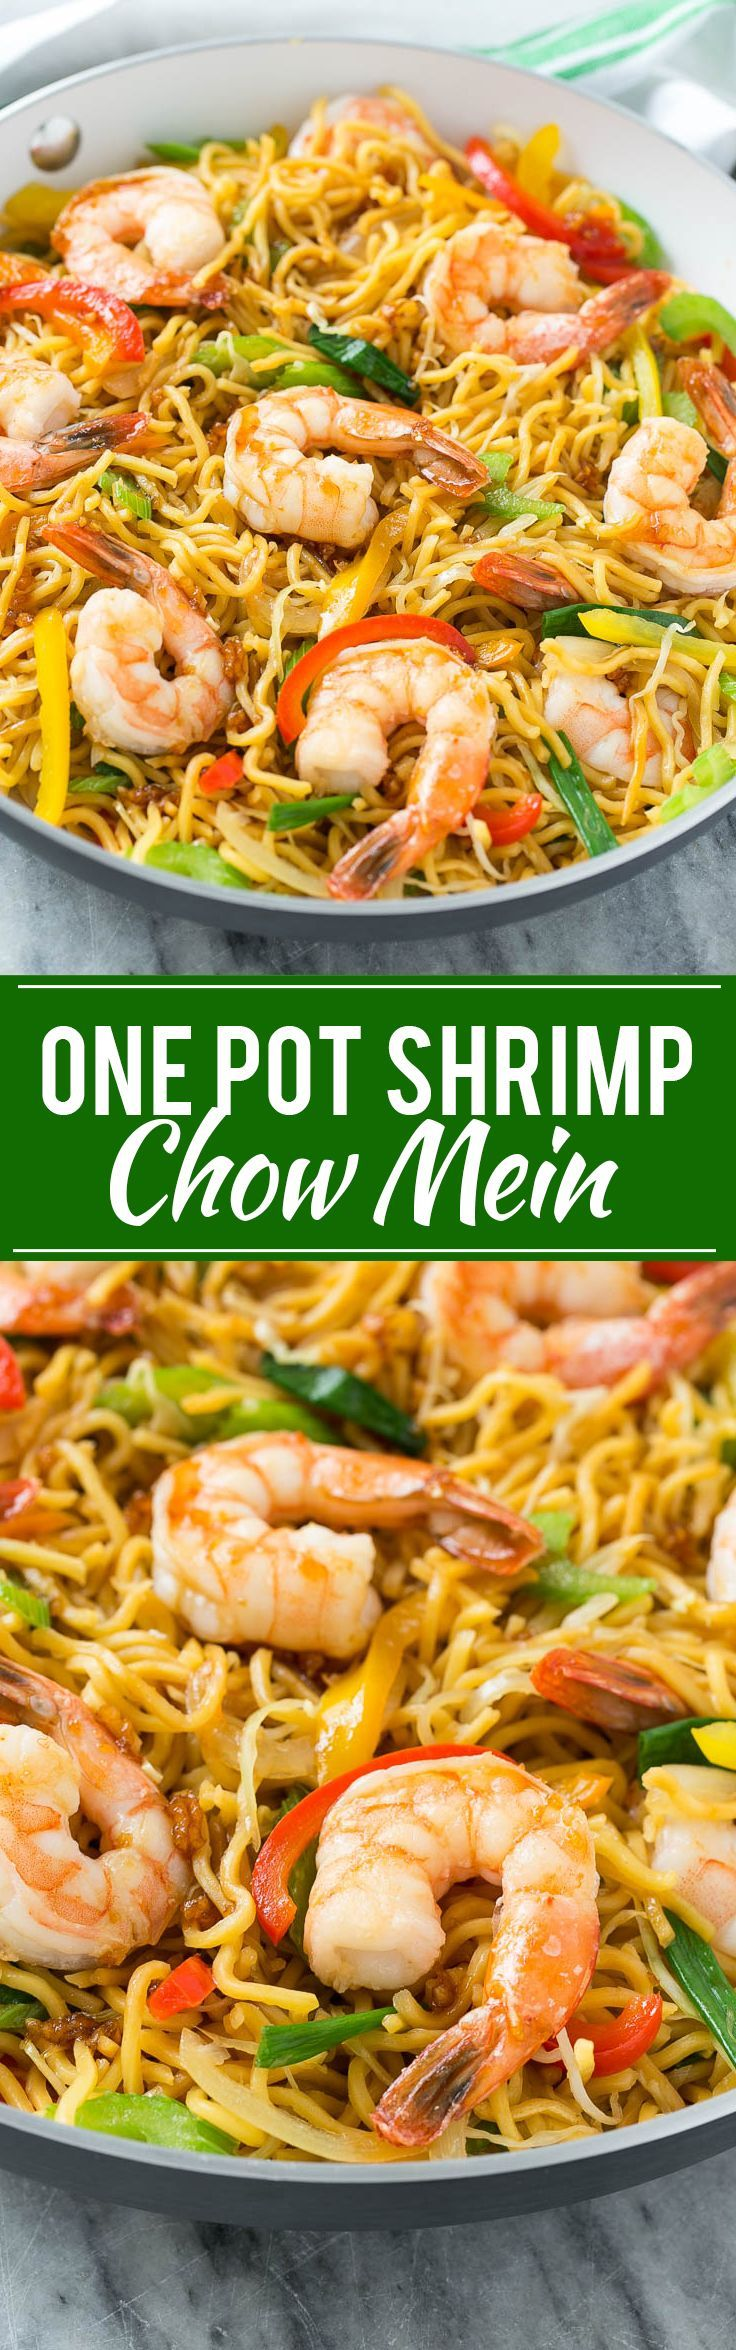 Shrimp Chow Mein Recipe | Chinese Food | One Pot Meal | Shrimp Recipe | Take Out | Easy Dinner Recipe | Chow Mein Recipe